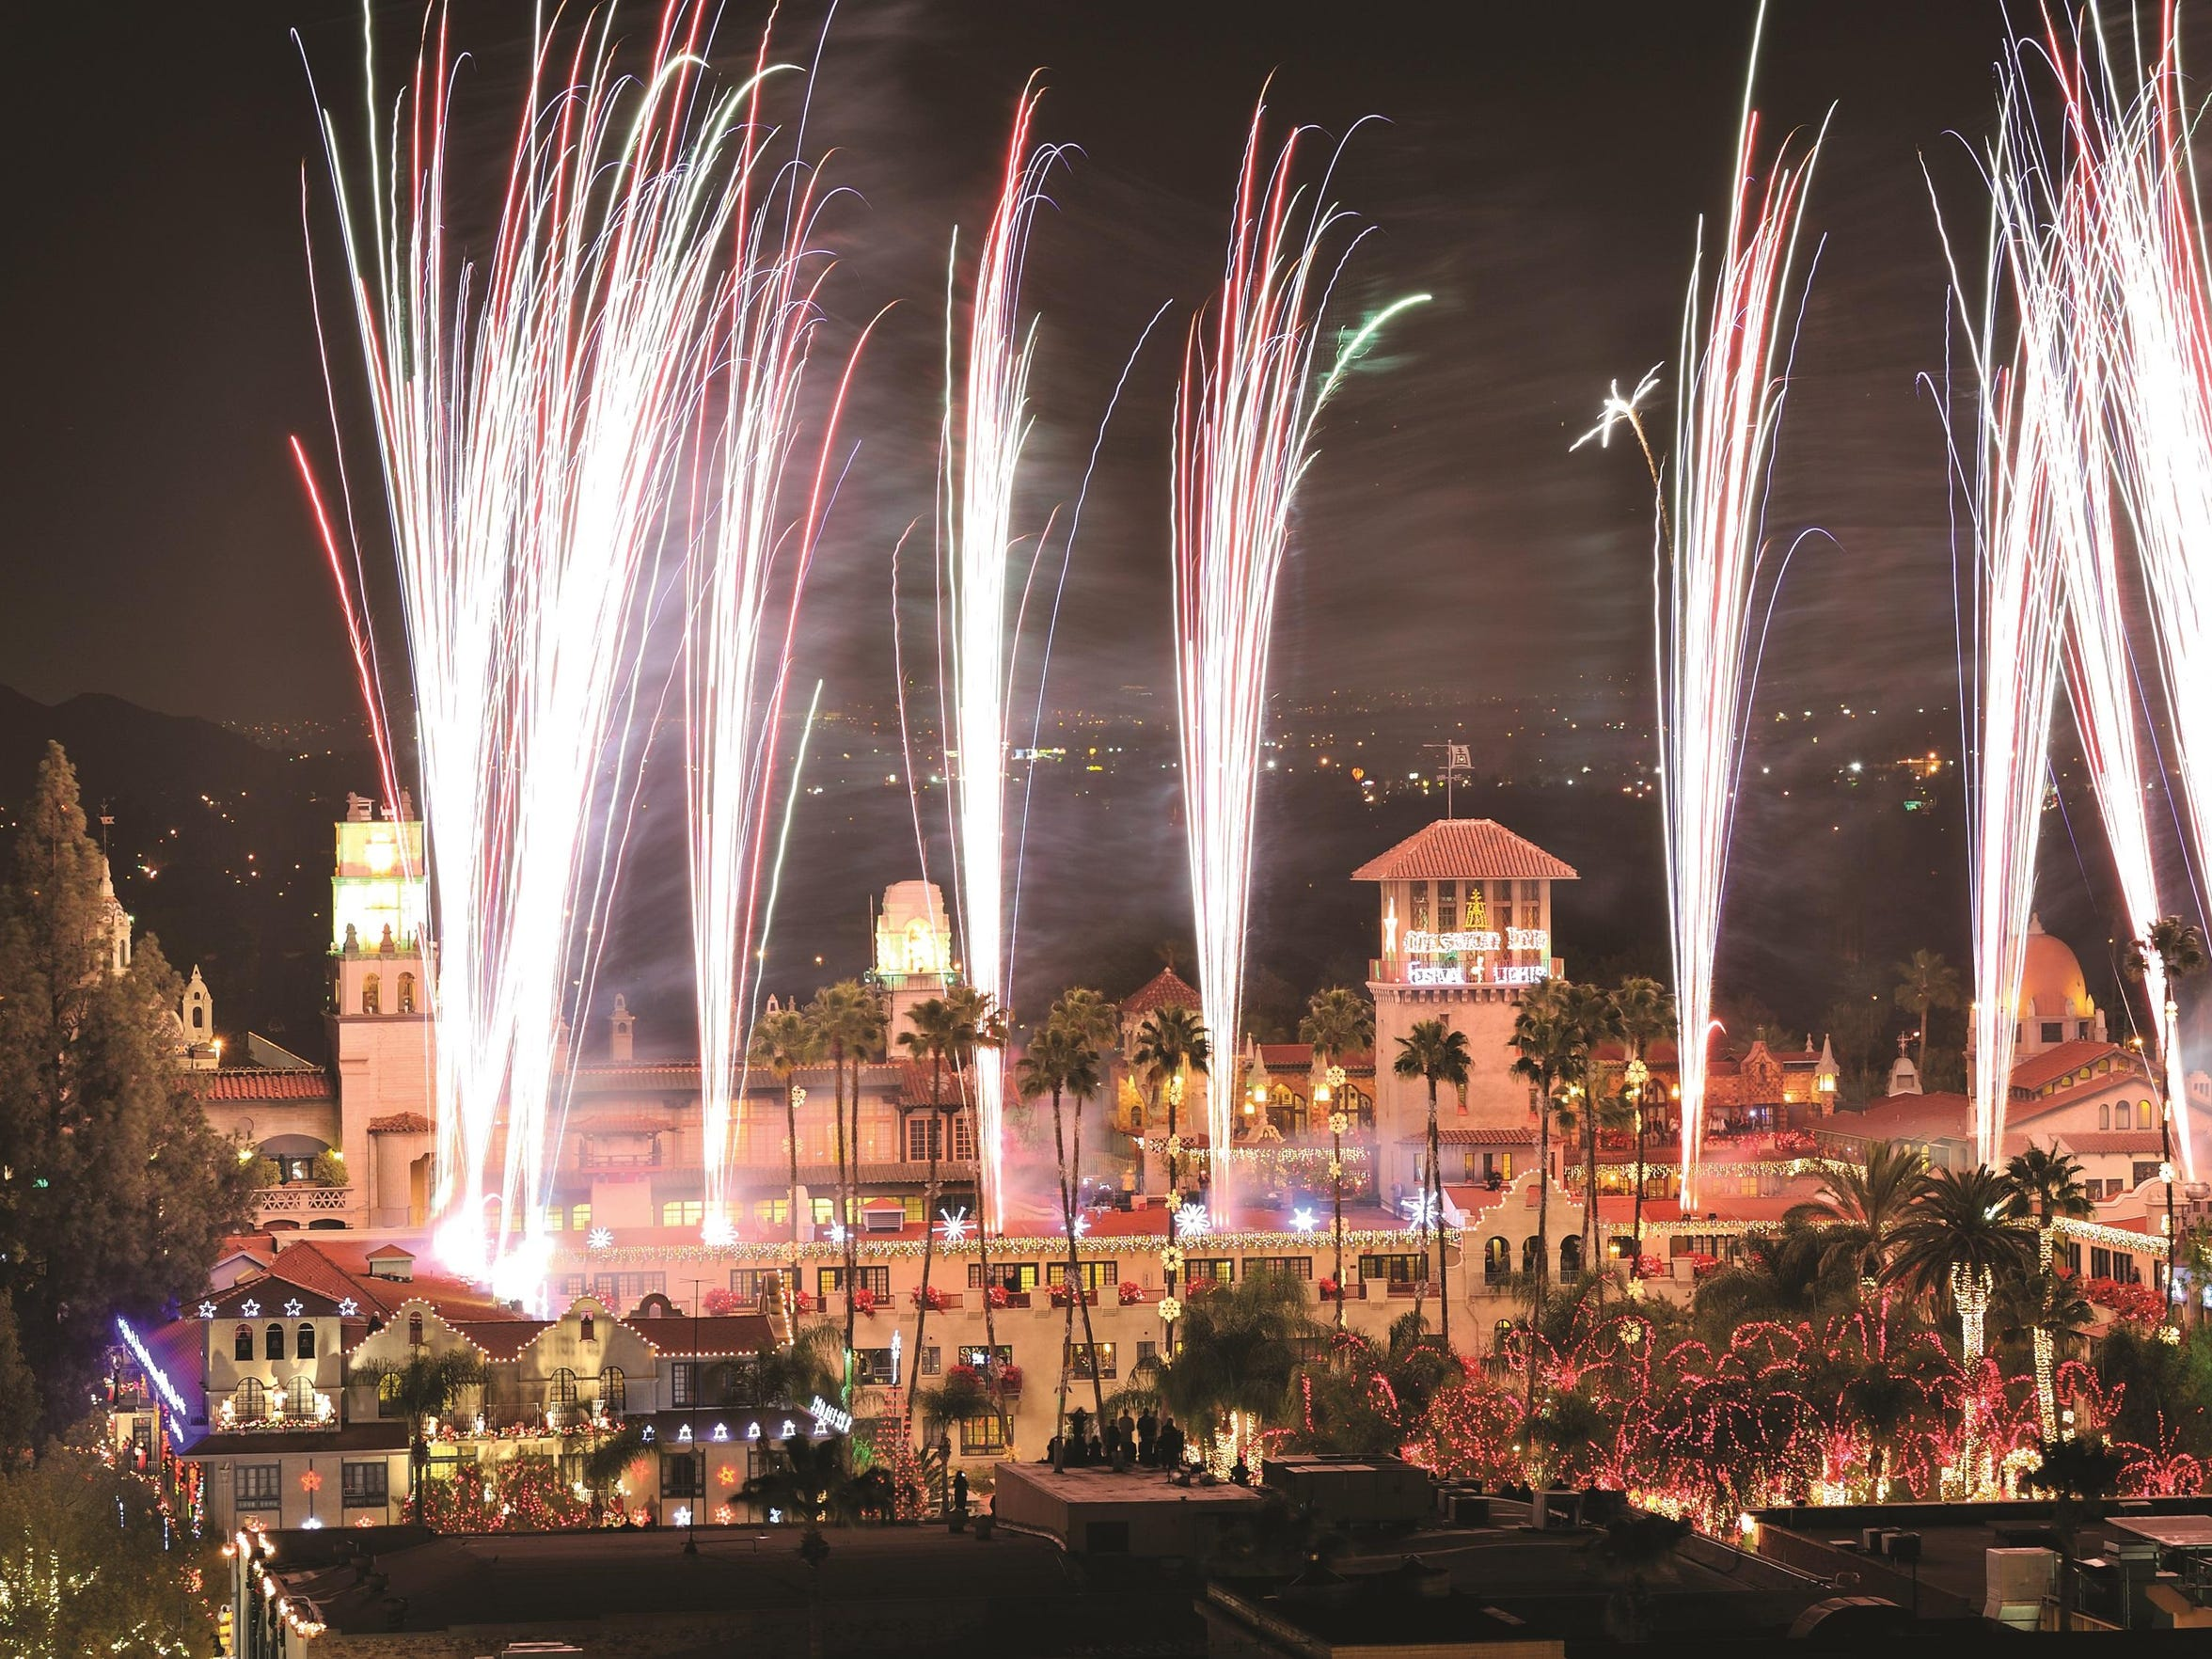 "From Nov. 23 through Jan. 6, the Mission Inn Hotel & Spa will be illuminated with millions of lights in what USA Today named the ""Best Public Lights Display in the Nation."""